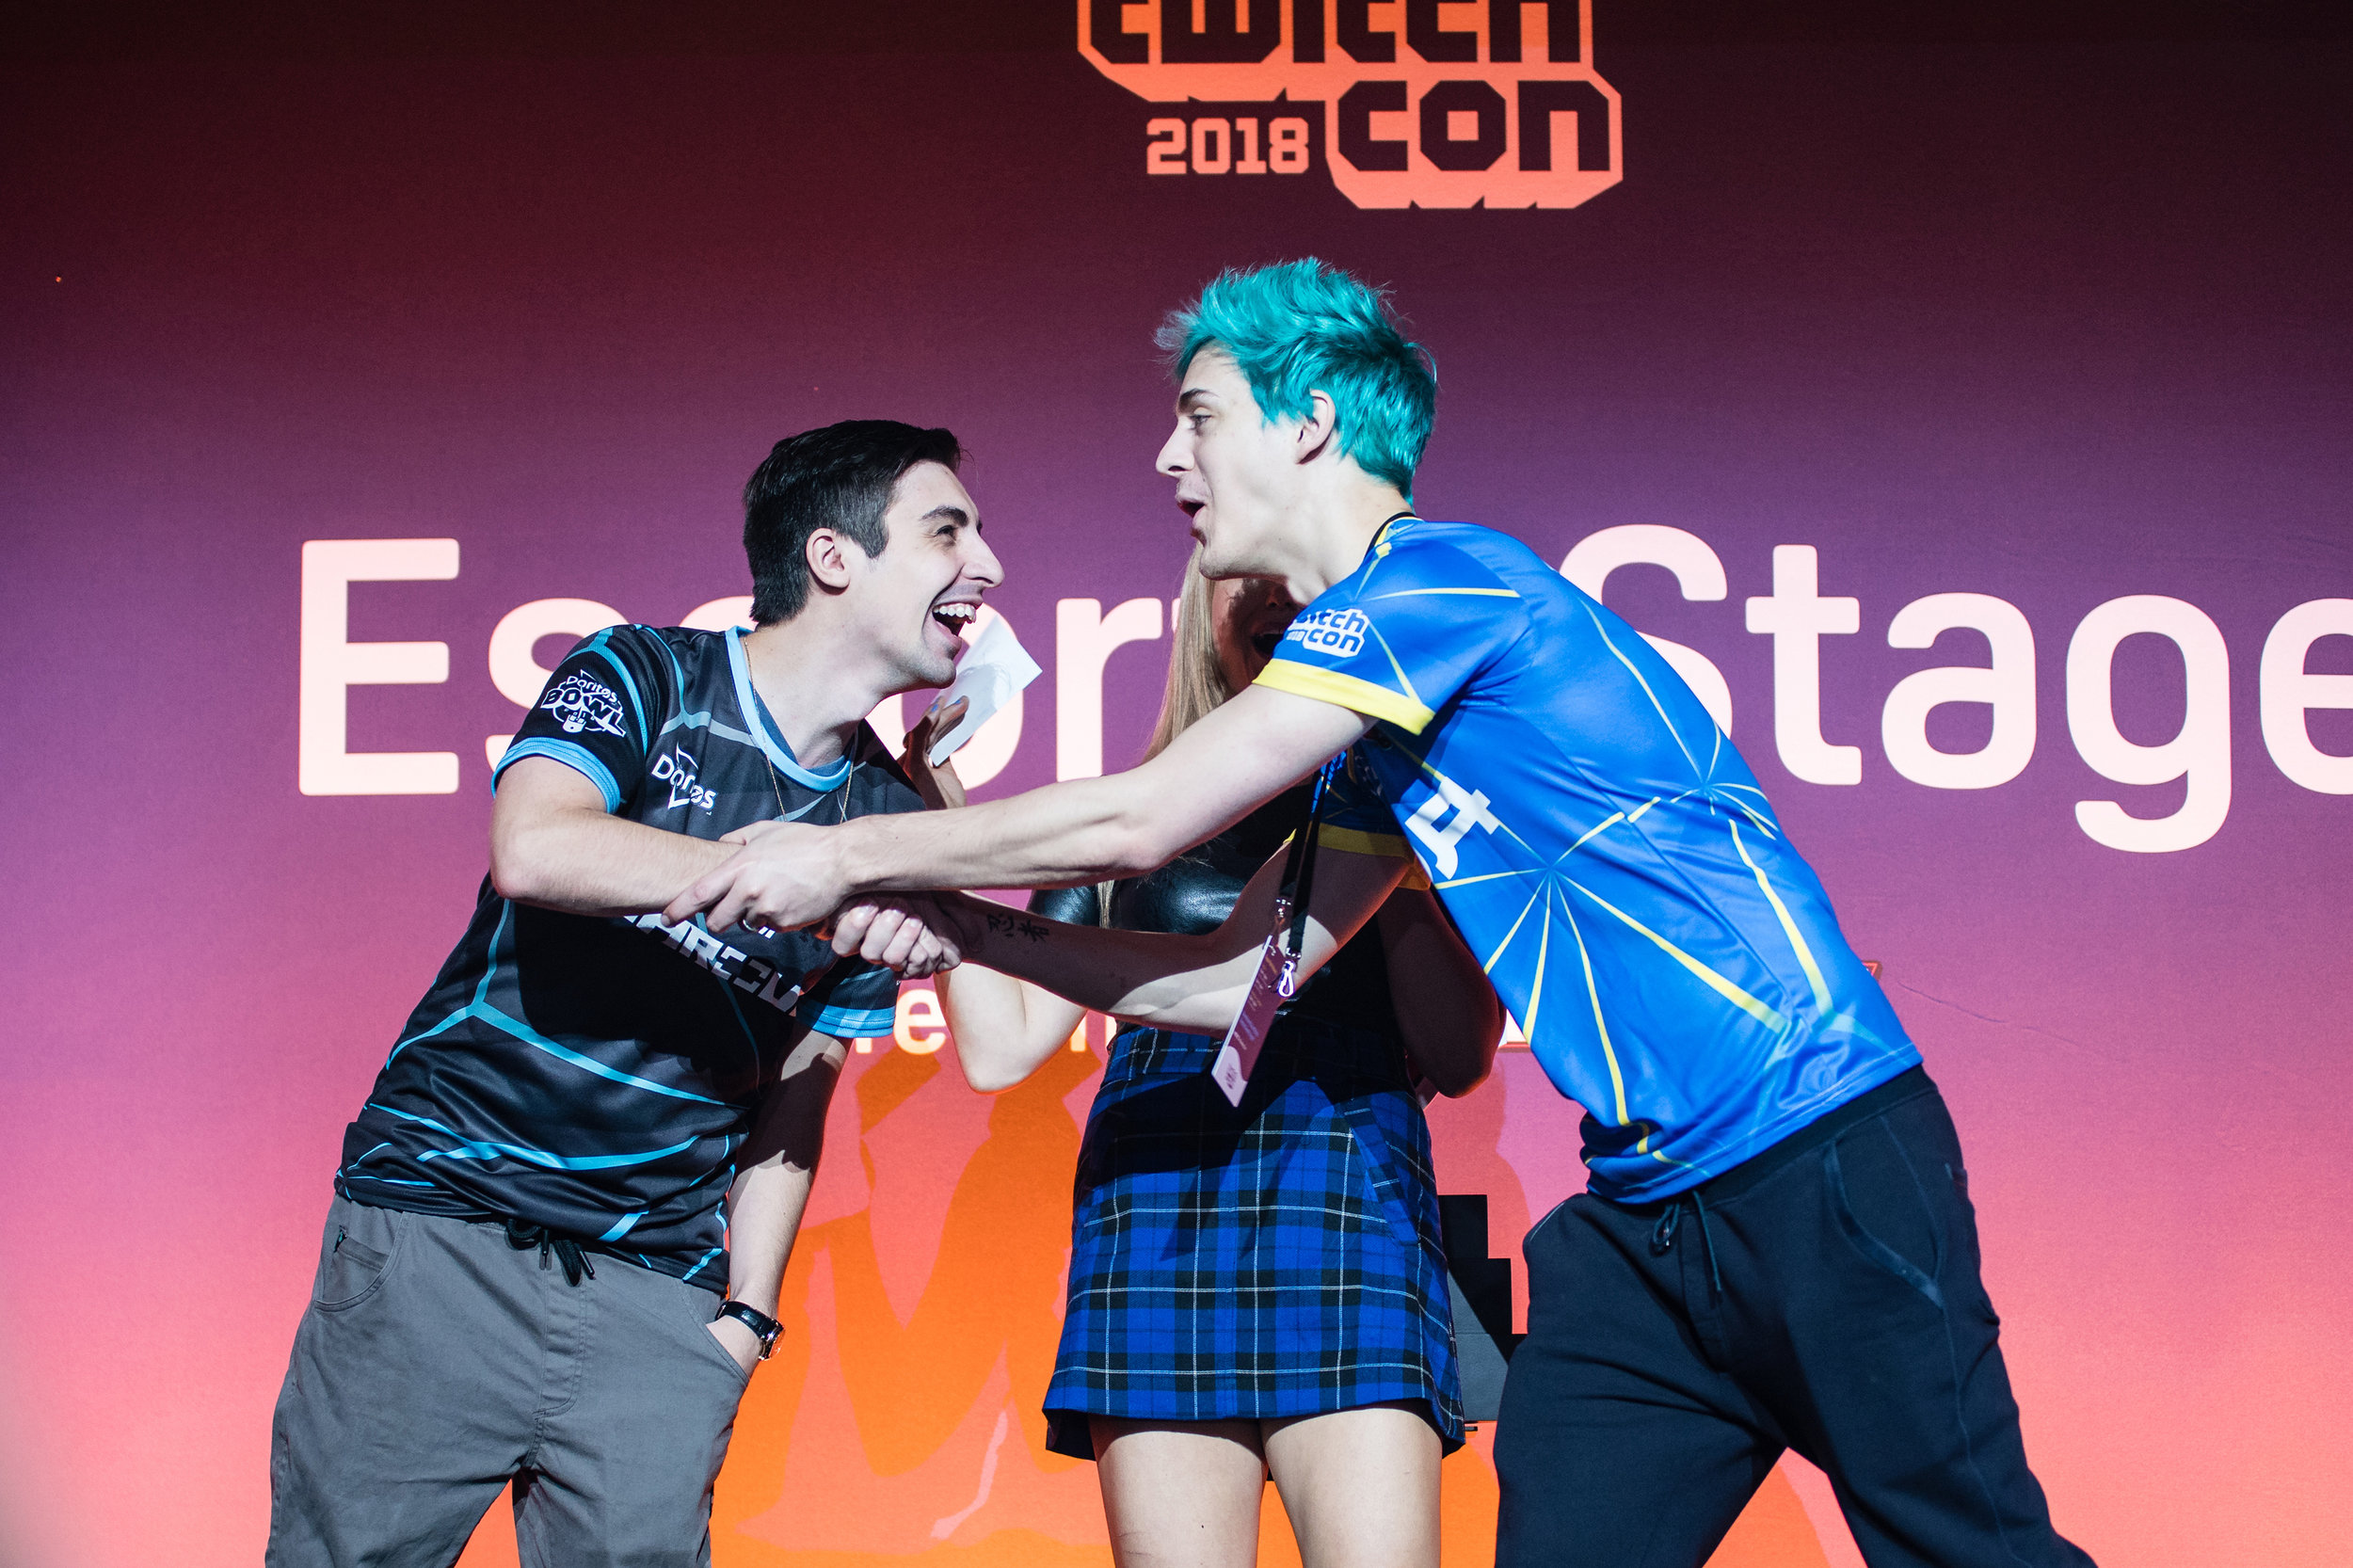 Shroud and Ninja shaking hands after Ninja fakes him out while competing in the first Doritos Bowl 2018 Call of Duty: Blackout Battle Royale tournament at TwitchCon, San Jose Convention Center on October 27, 2018 in San Jose, California.  Photo by Eric_Ananmalay / ESPAT Media